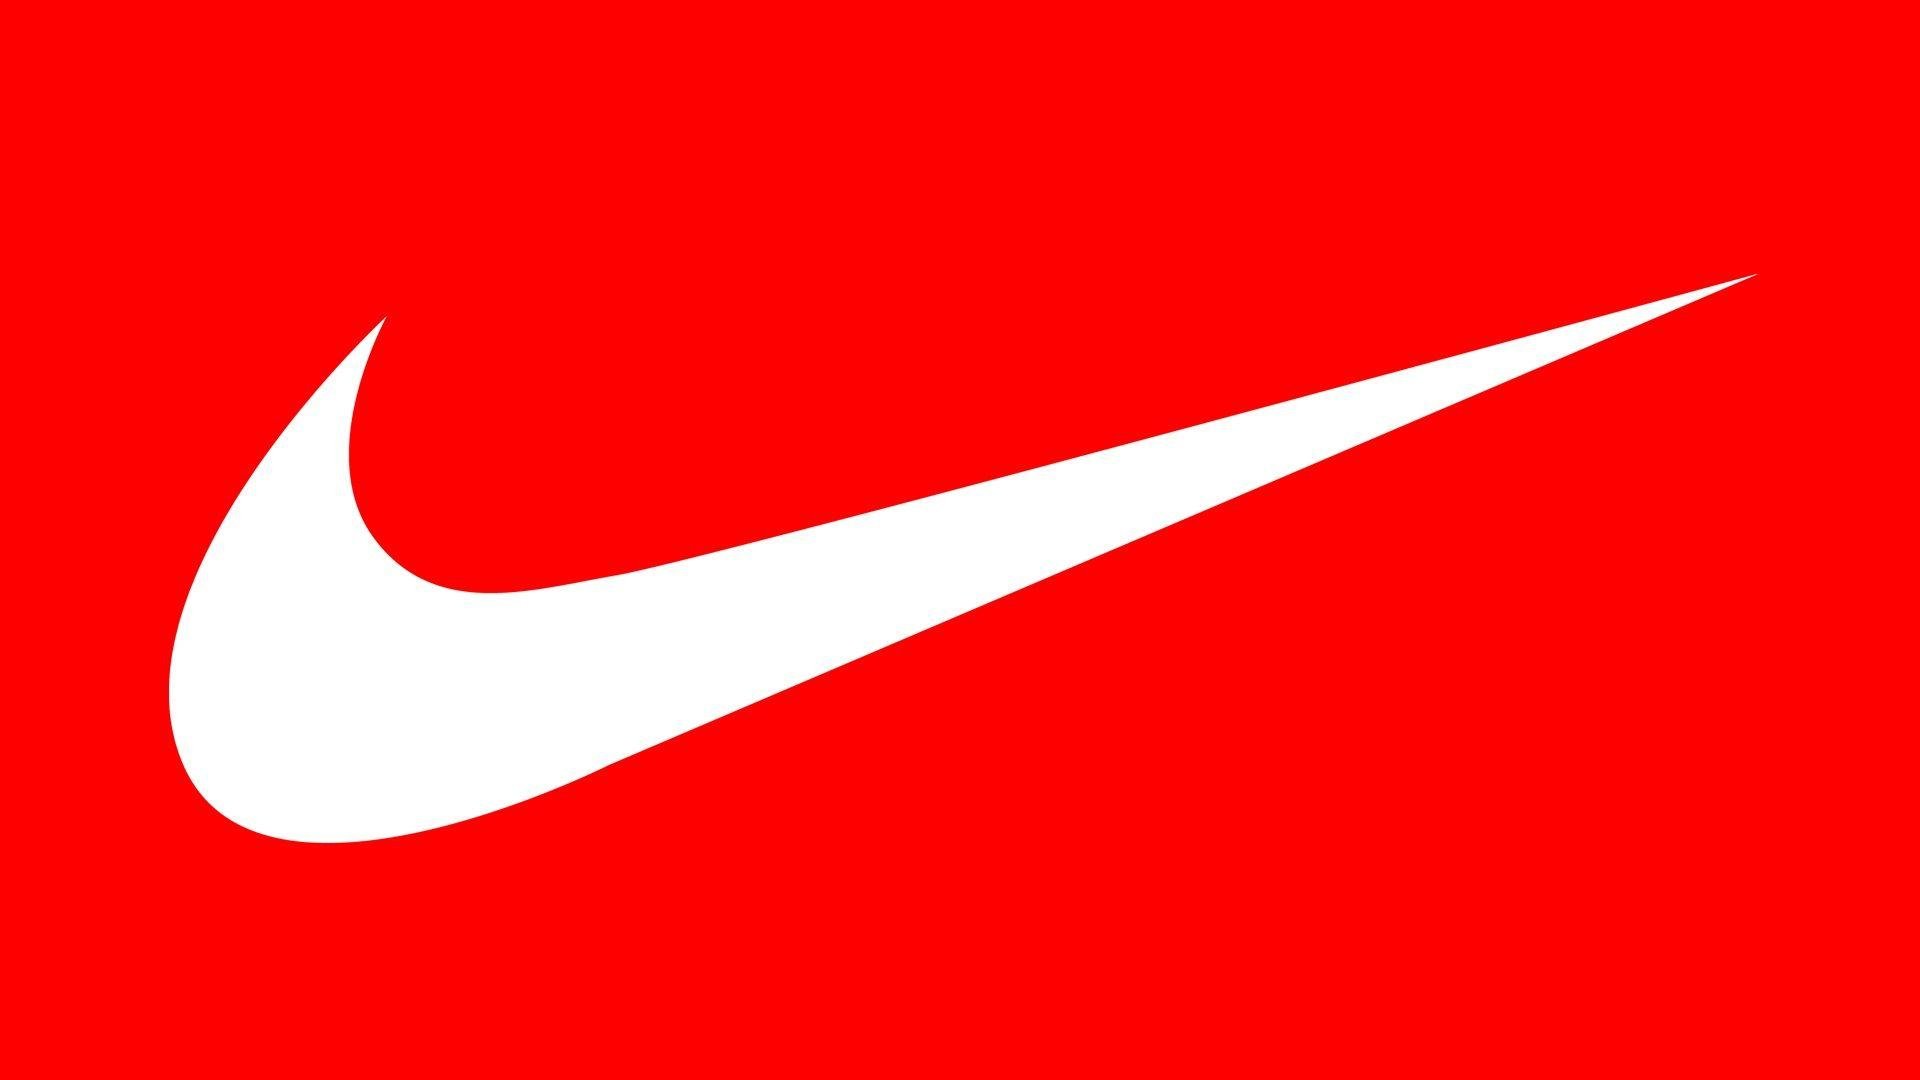 nike wallpapers cool white - photo #37